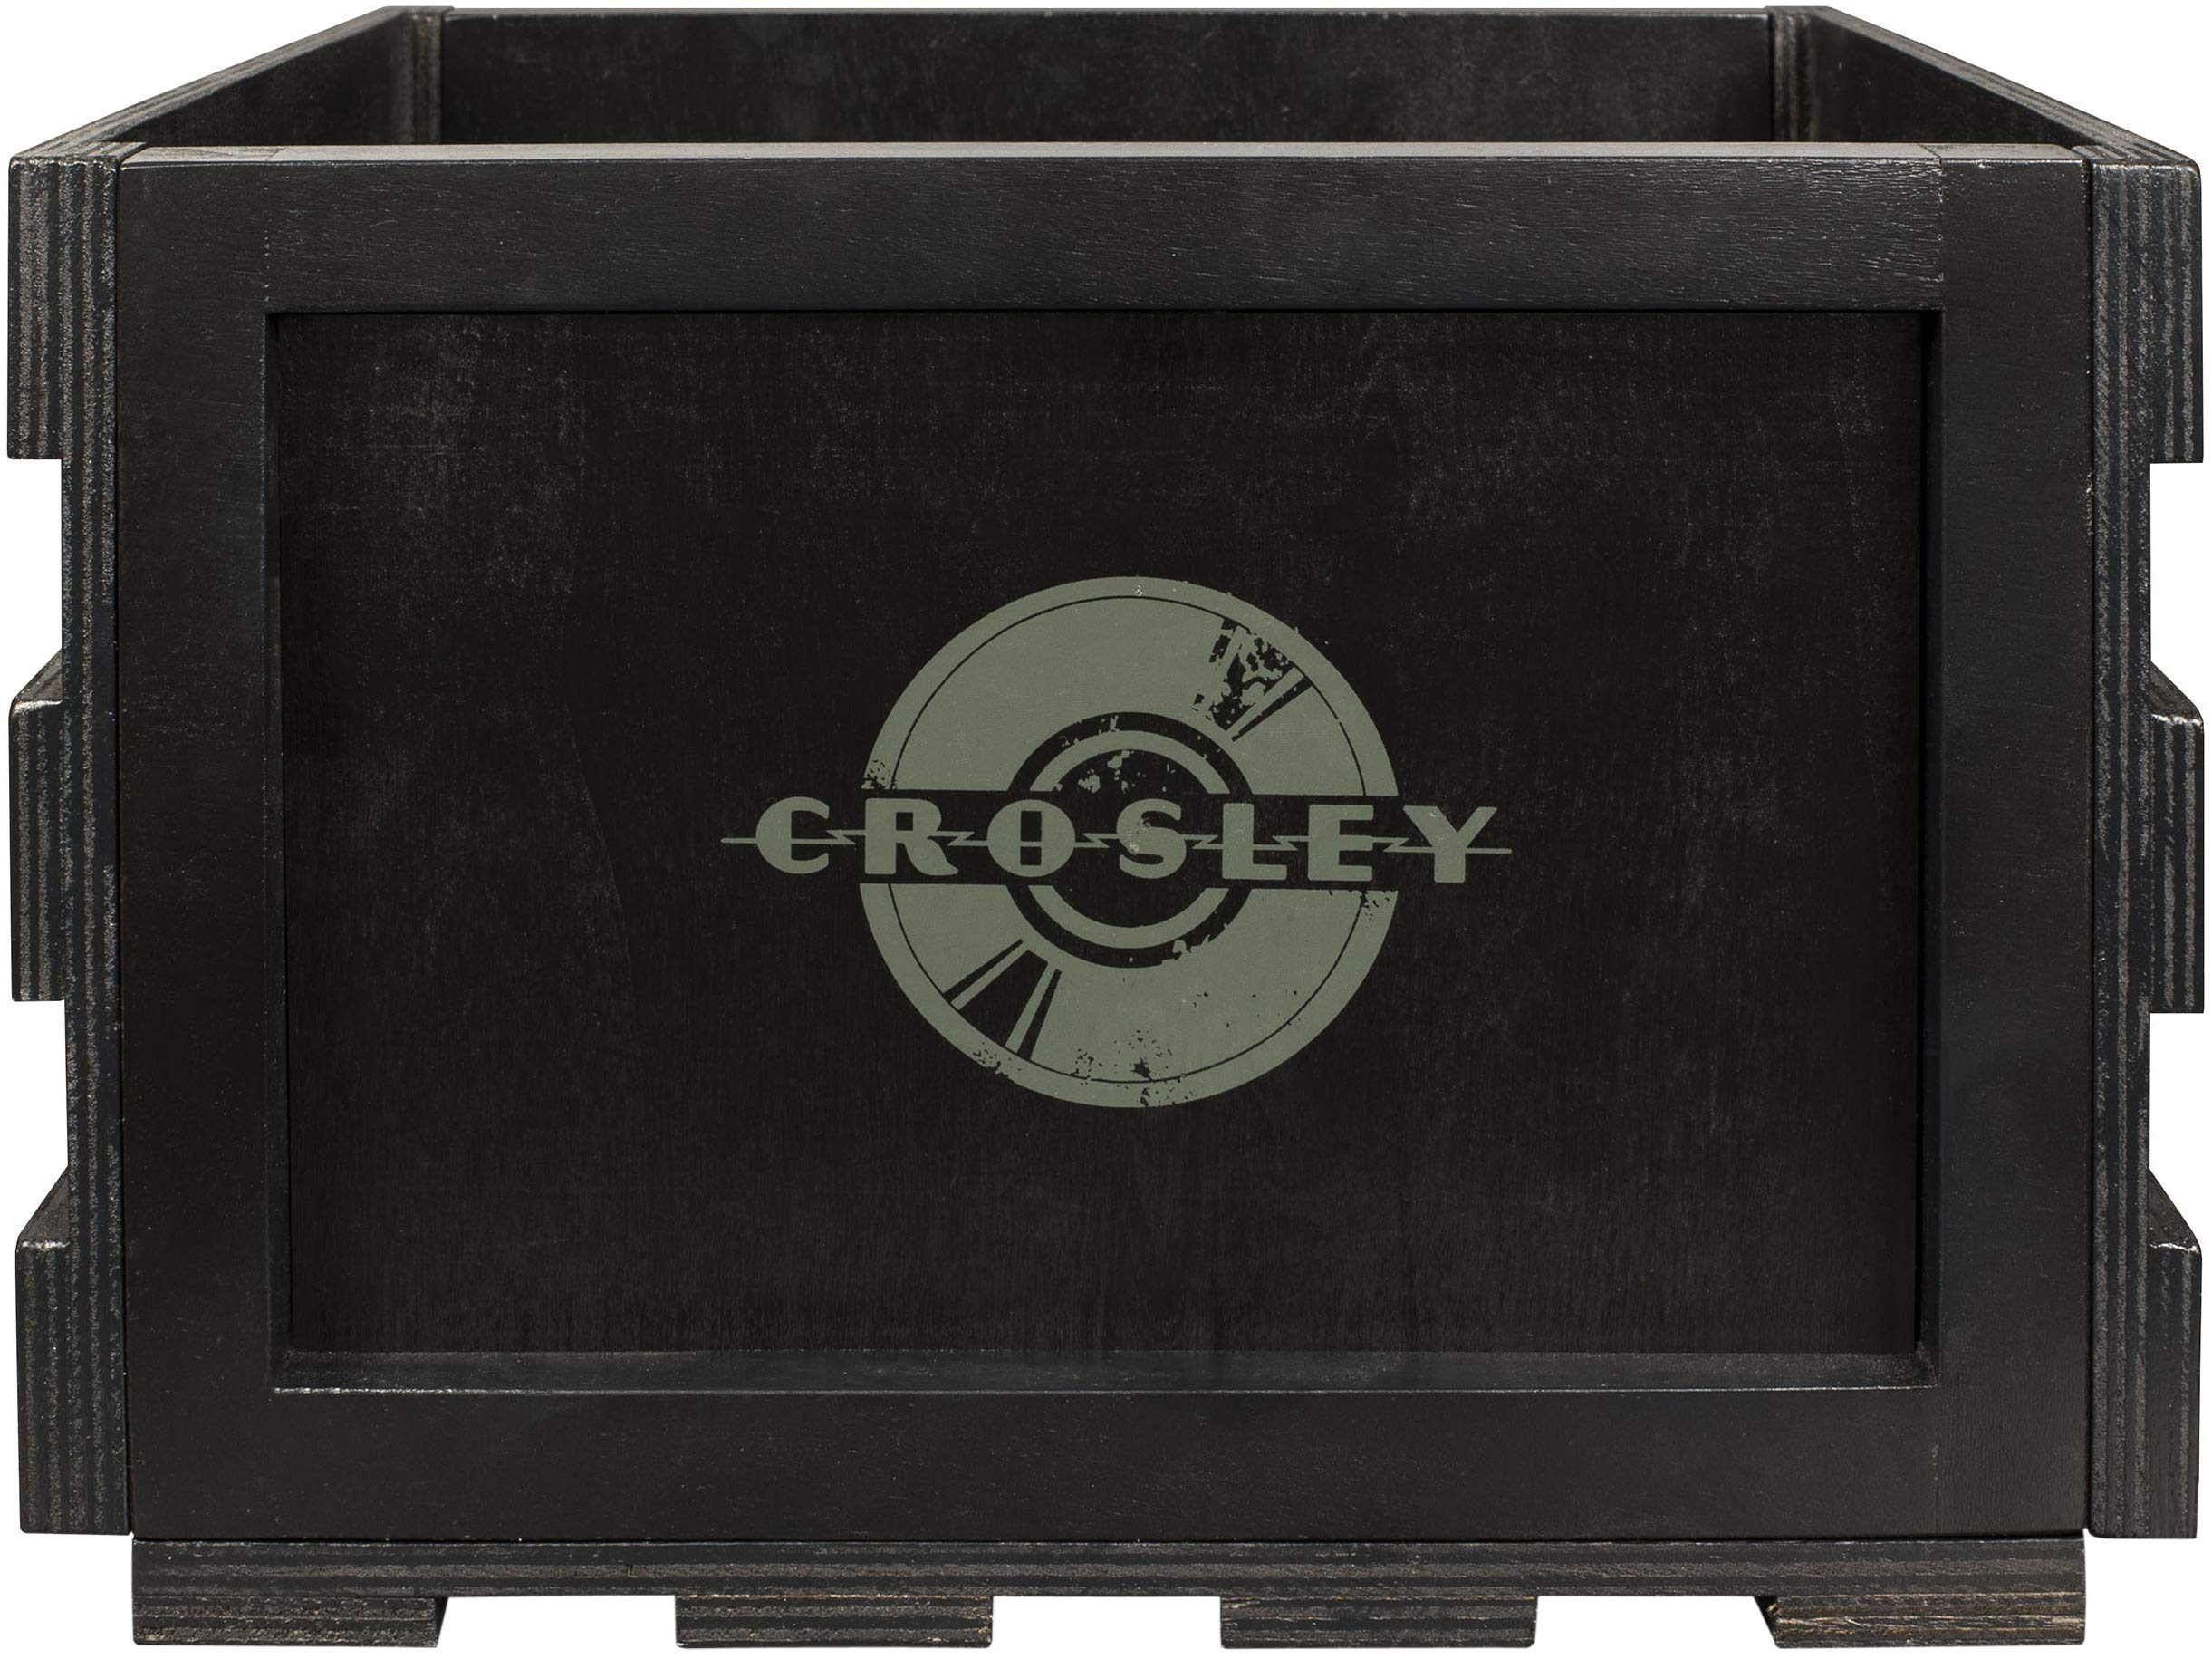 Crosley AC1004A-BK Record Storage Crate Holds up to 75 Albums, Black by Crosley (Image #3)